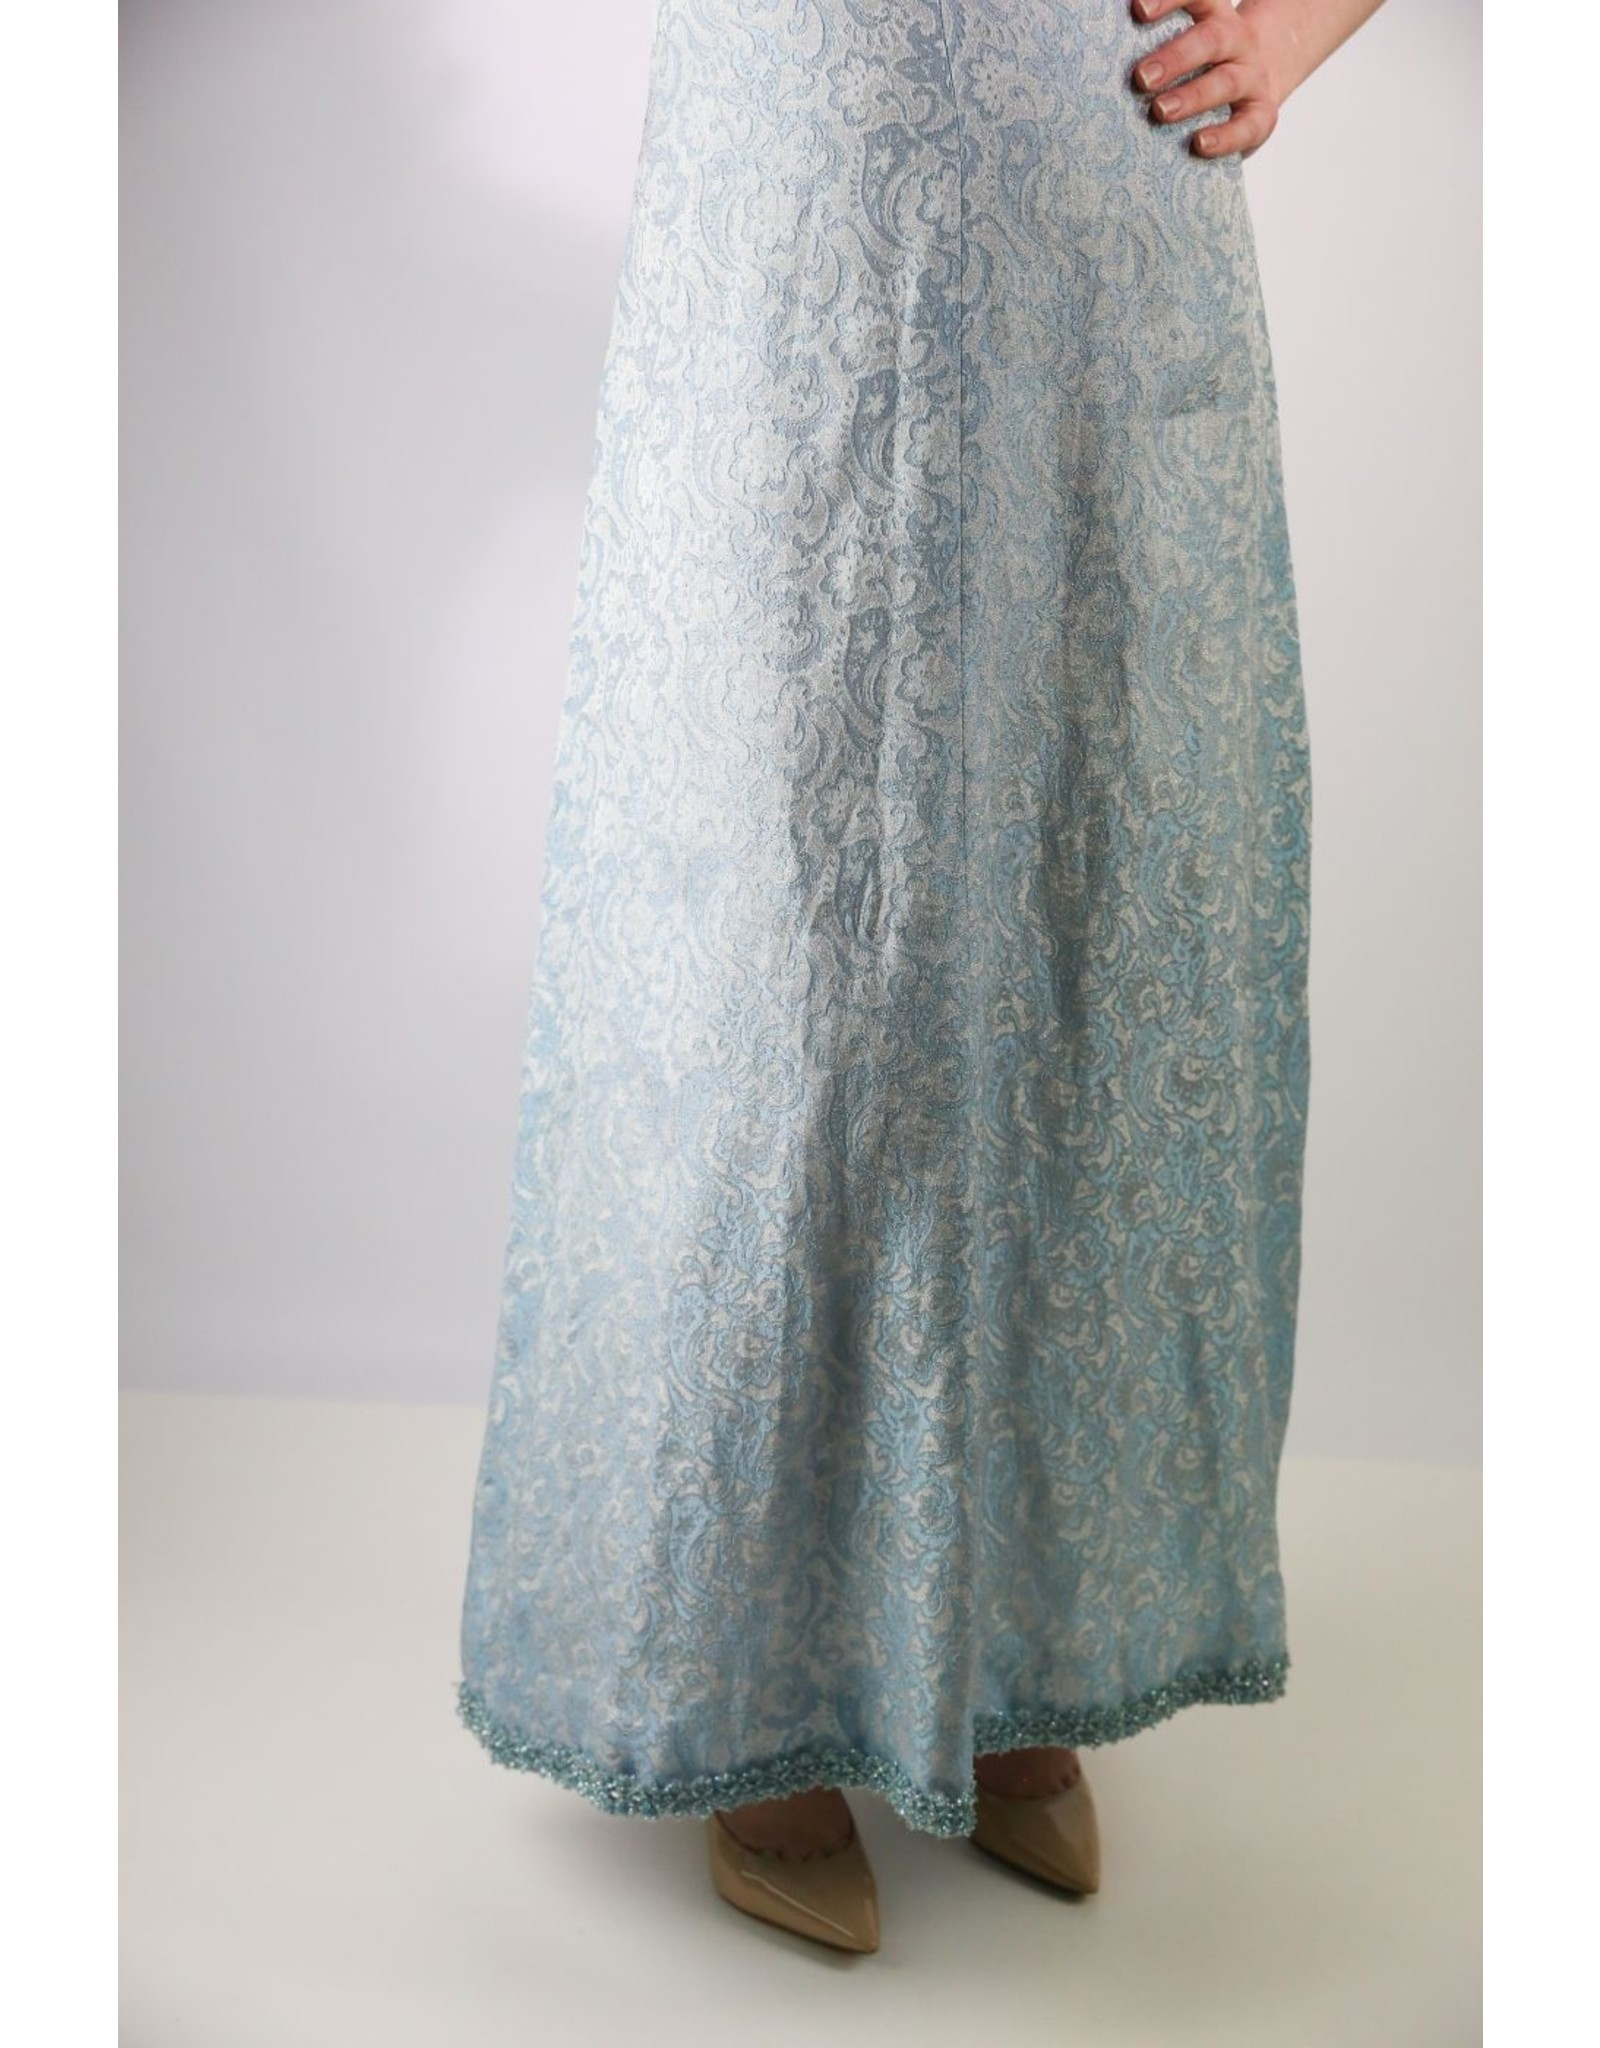 1970's Blue & Silver Textured Cocktail Dress